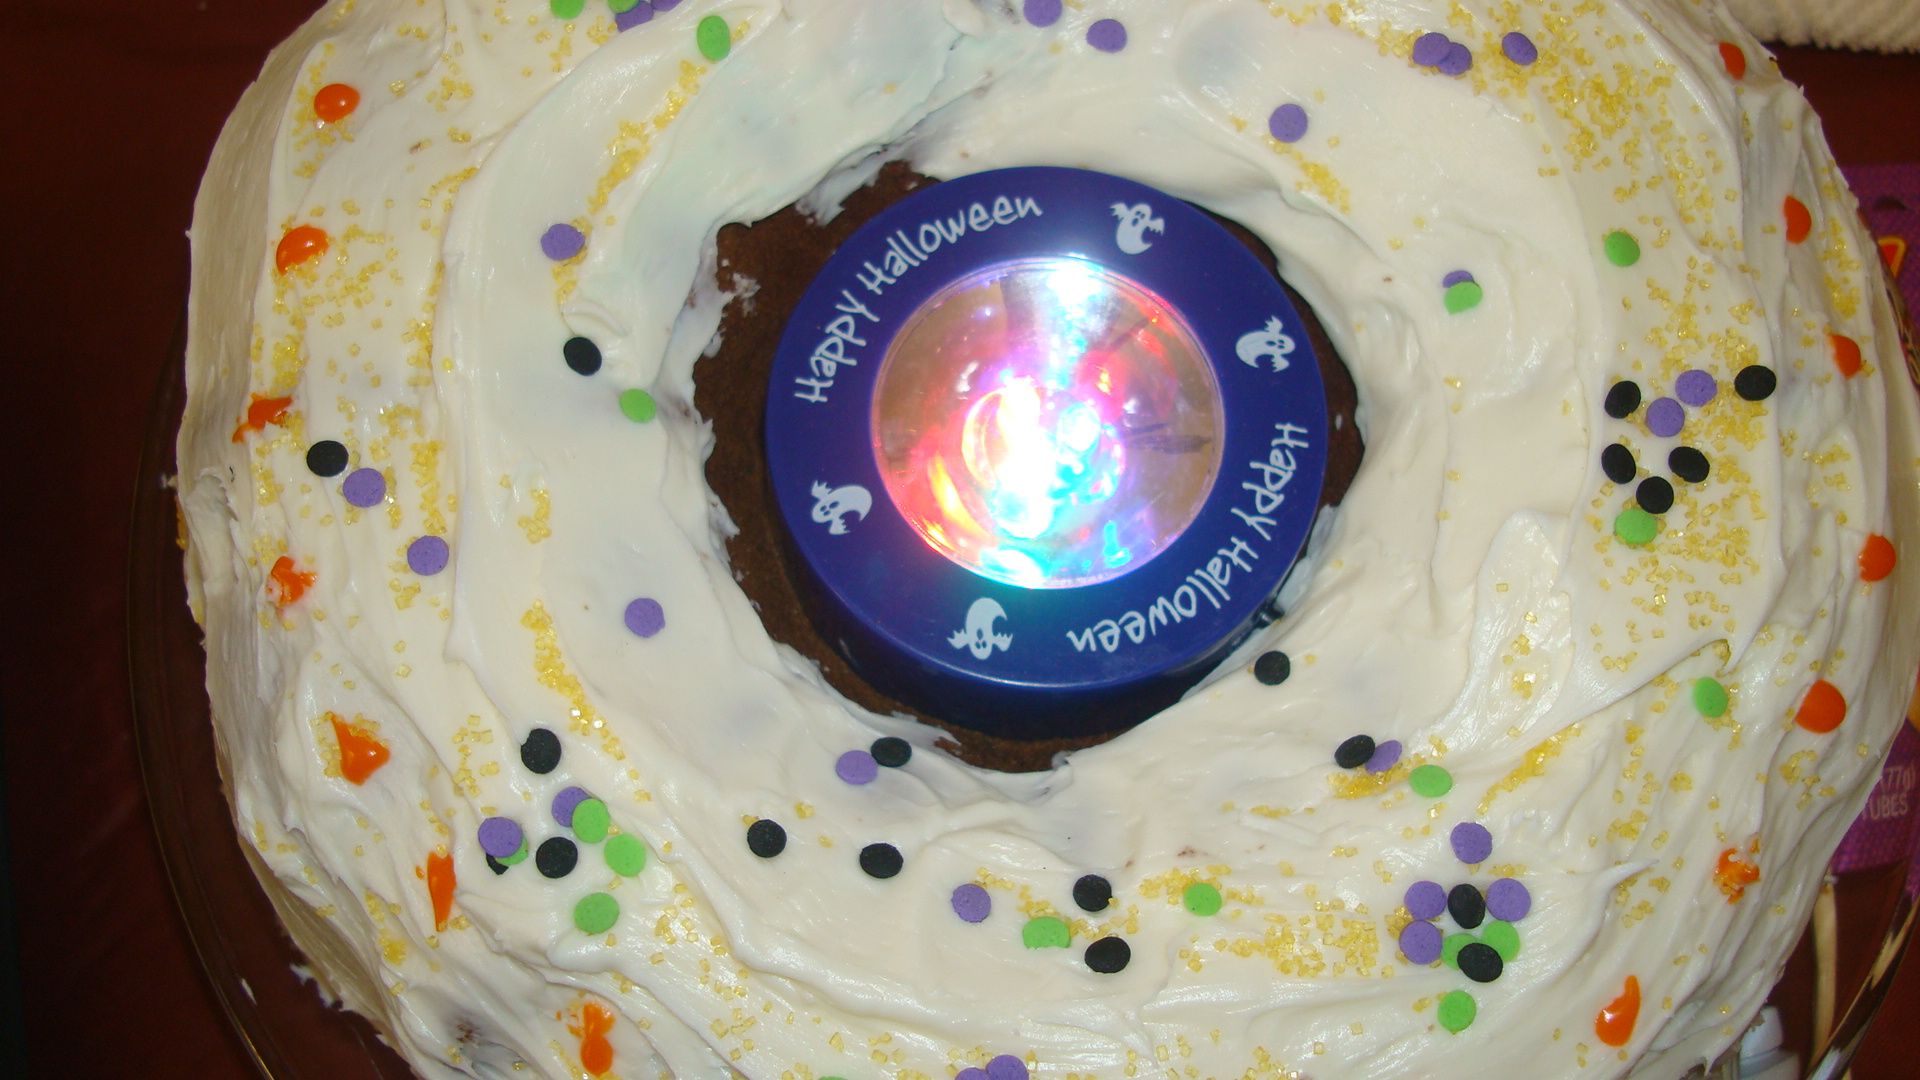 Picture of PLACE CAKE ON ROUND CARDBOARD PROP.